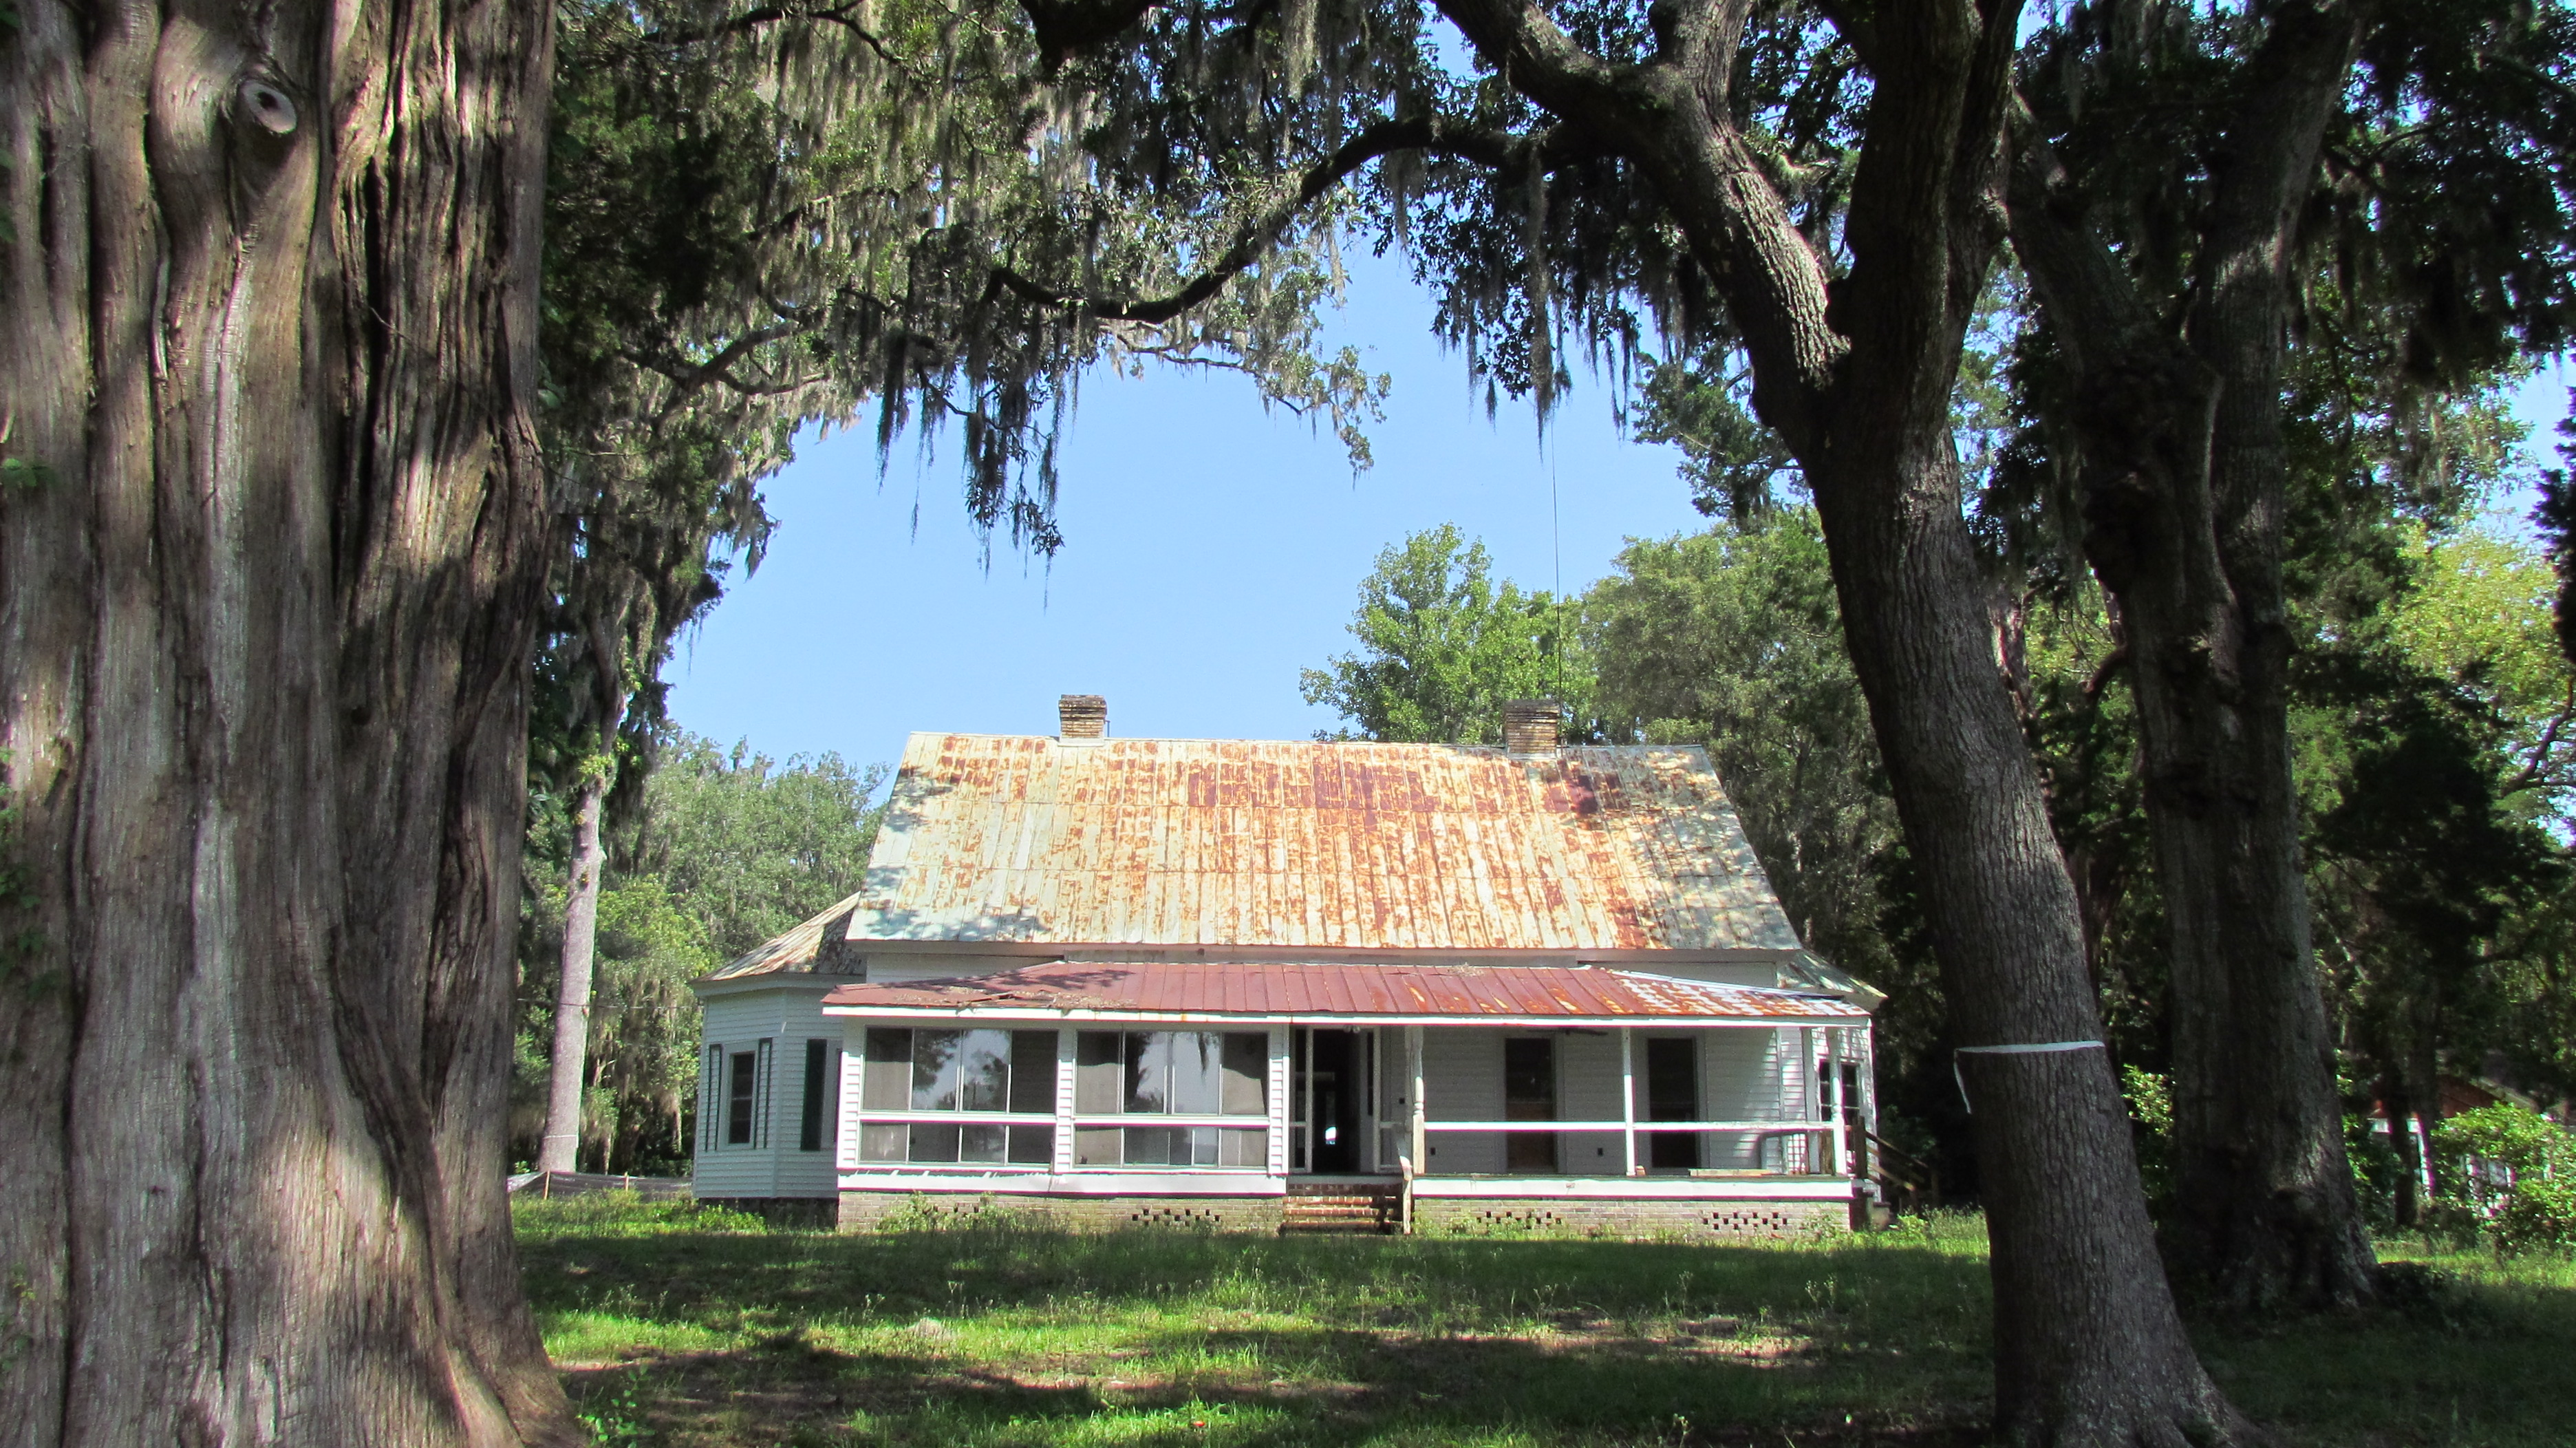 Cedar Bluff, An 1890s Historic Home On The May River In Bluffton, SC, In  2013 Prior To Renovations. Owners Joe U0026 Diana Zokan Donated The Old Metal  Roofing ...